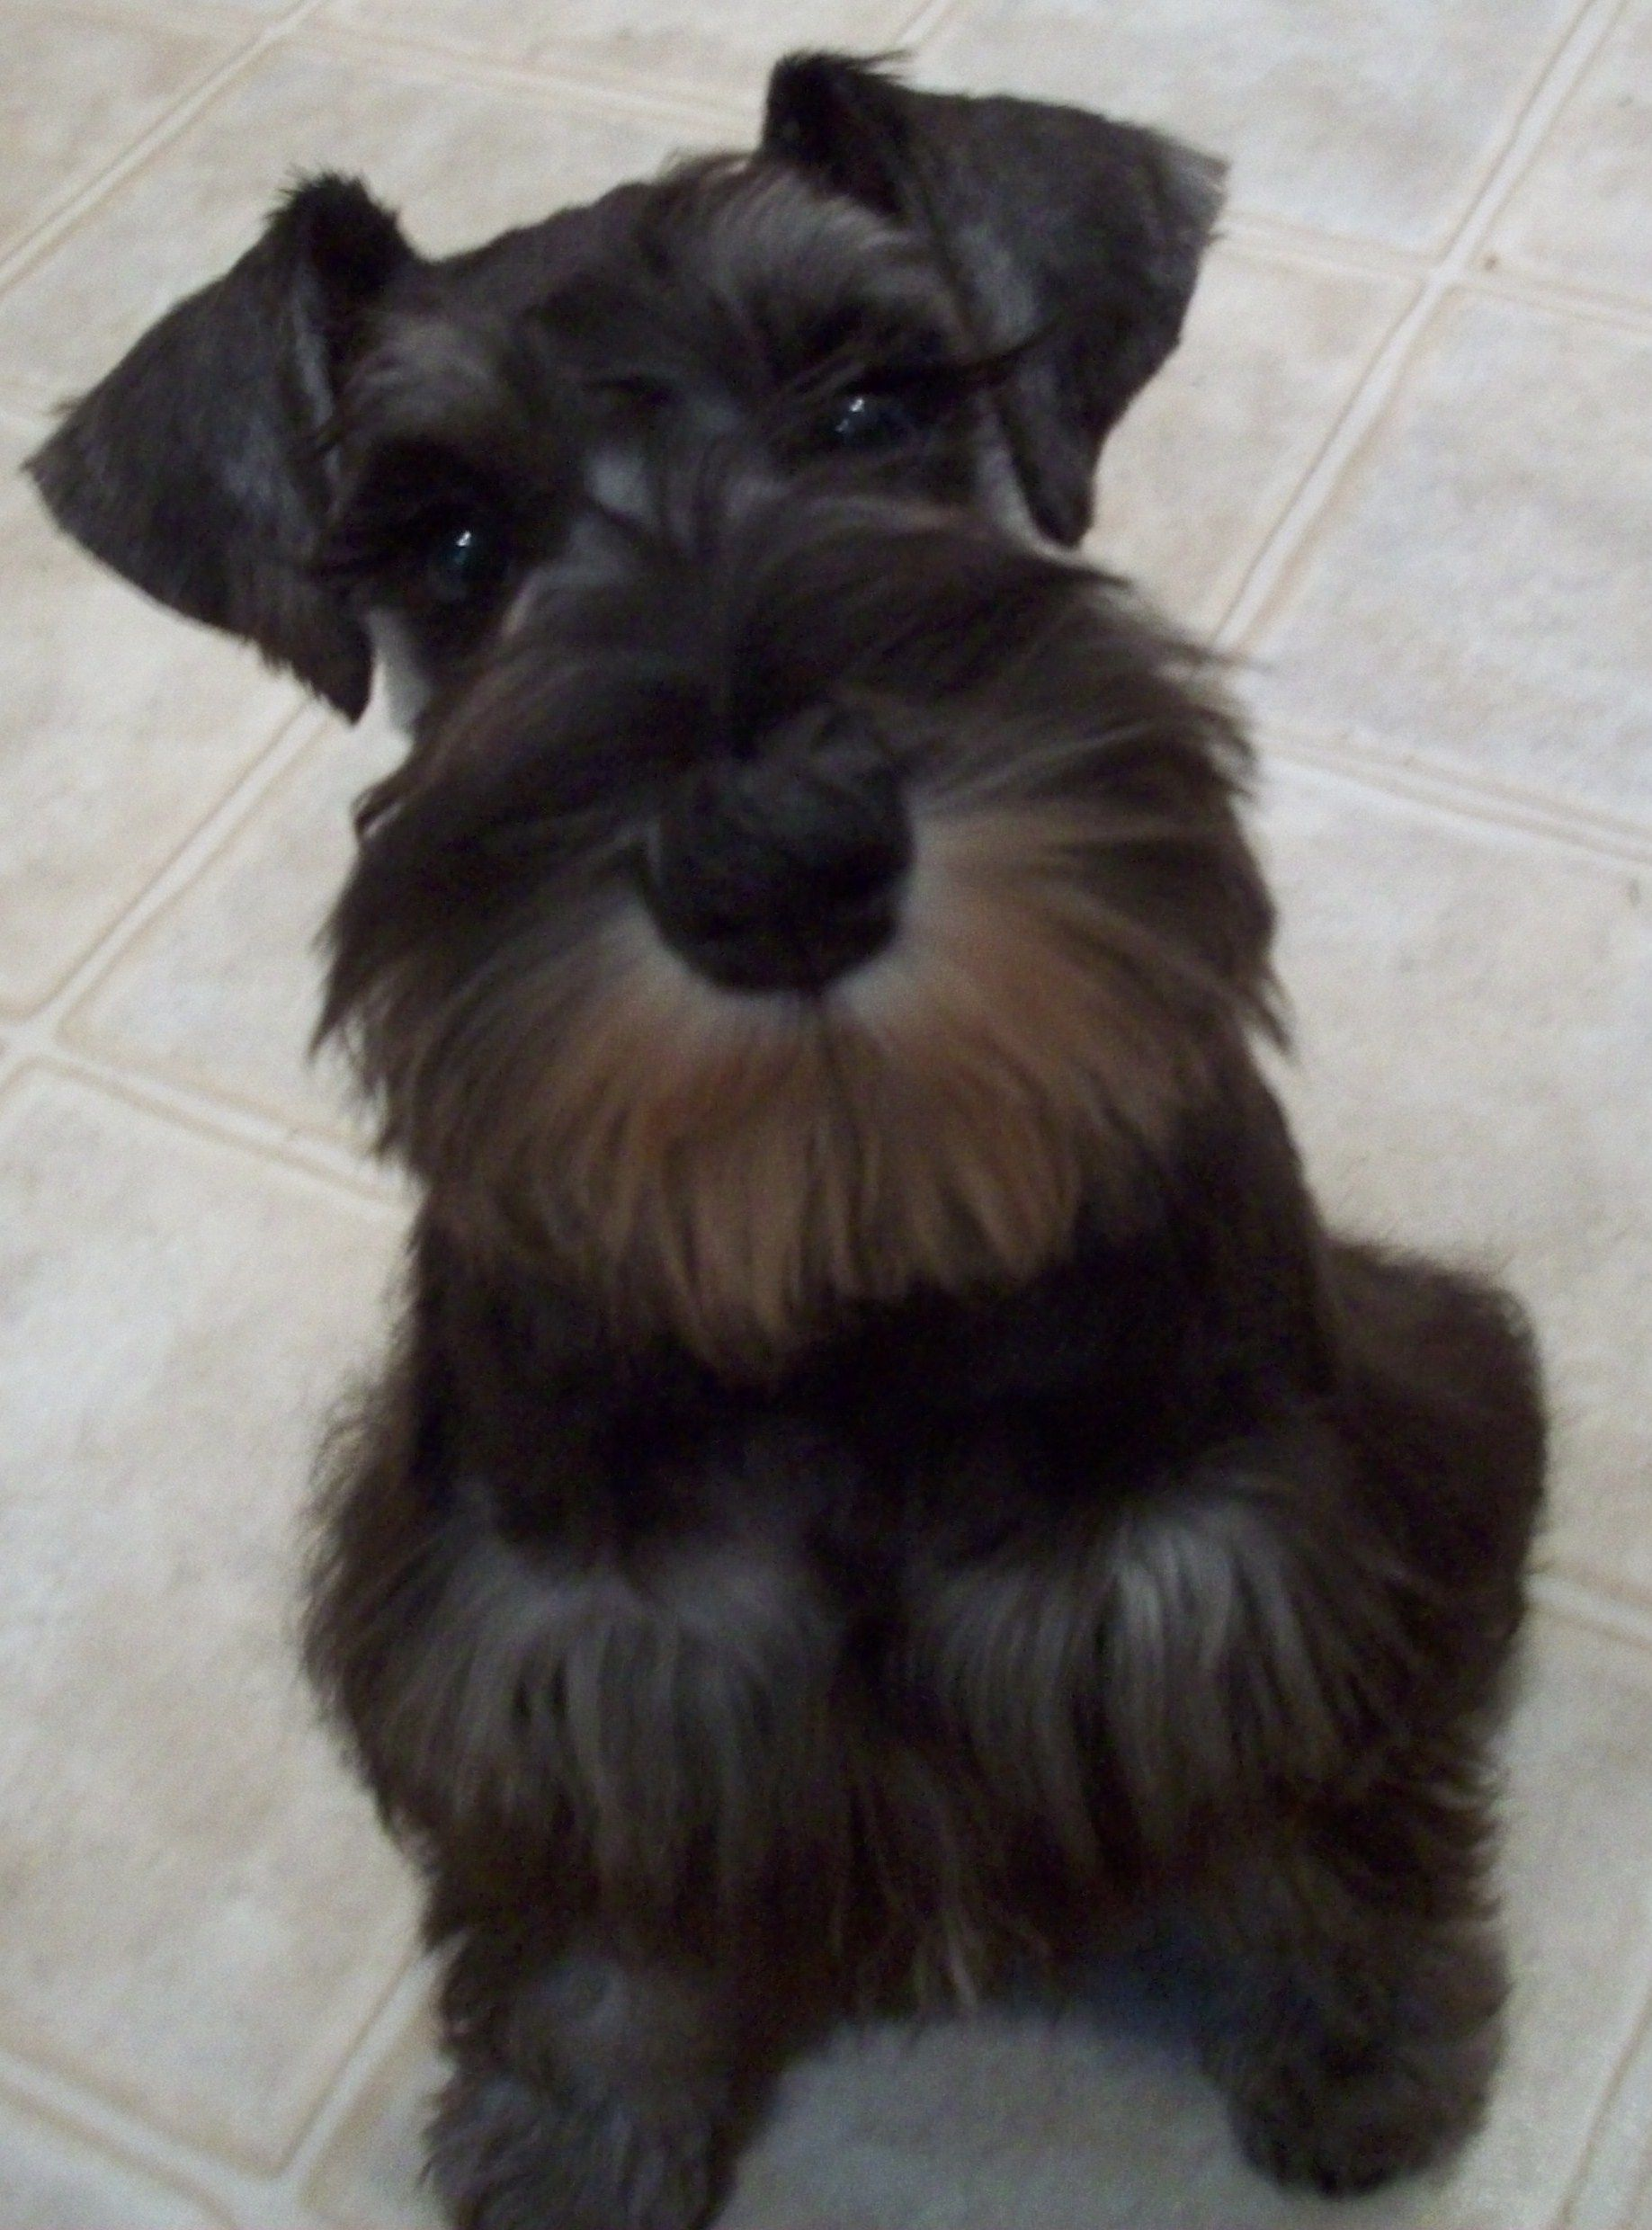 Pin By Teri Giese On Darling Dogs Miniature Schnauzer Miniature Schnauzer Puppies Schnauzer